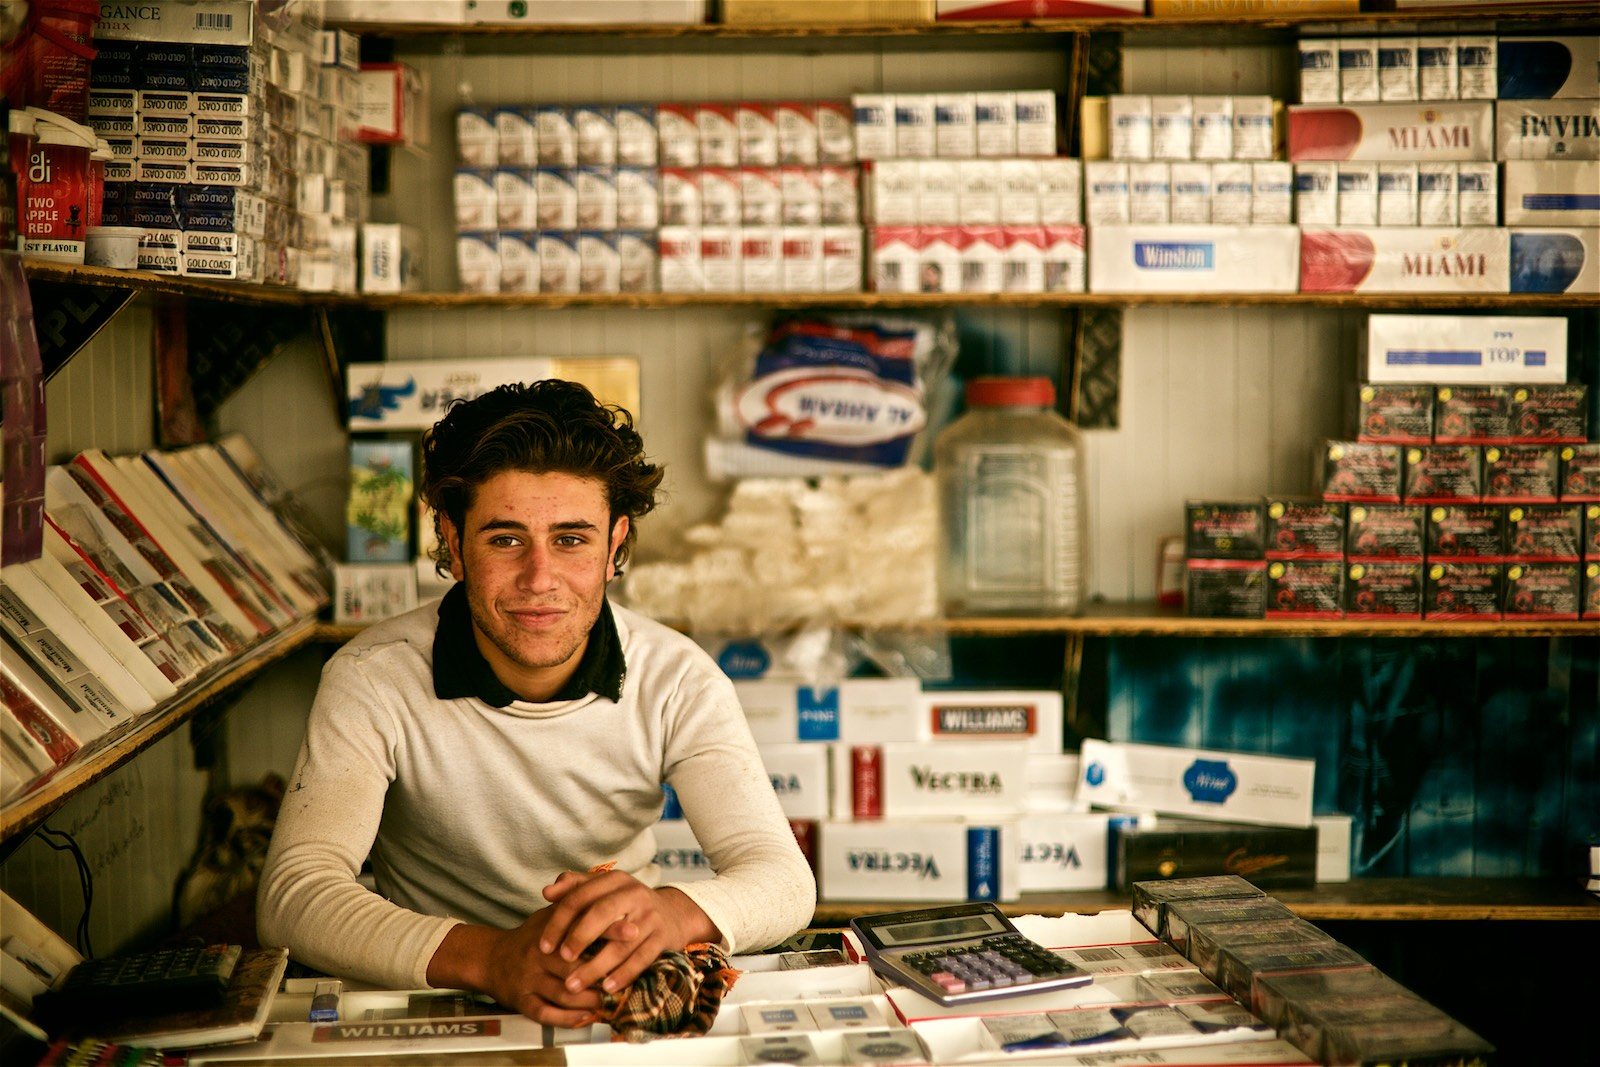 Majd, a 17-year old teenager from Dara'a, is a local cigarette vendor. He says he fled the conflict with his family and is happy to be safe, but is desperate for achieving more than just sitting in a cigarette booth.(photo: Denis Bosnic)